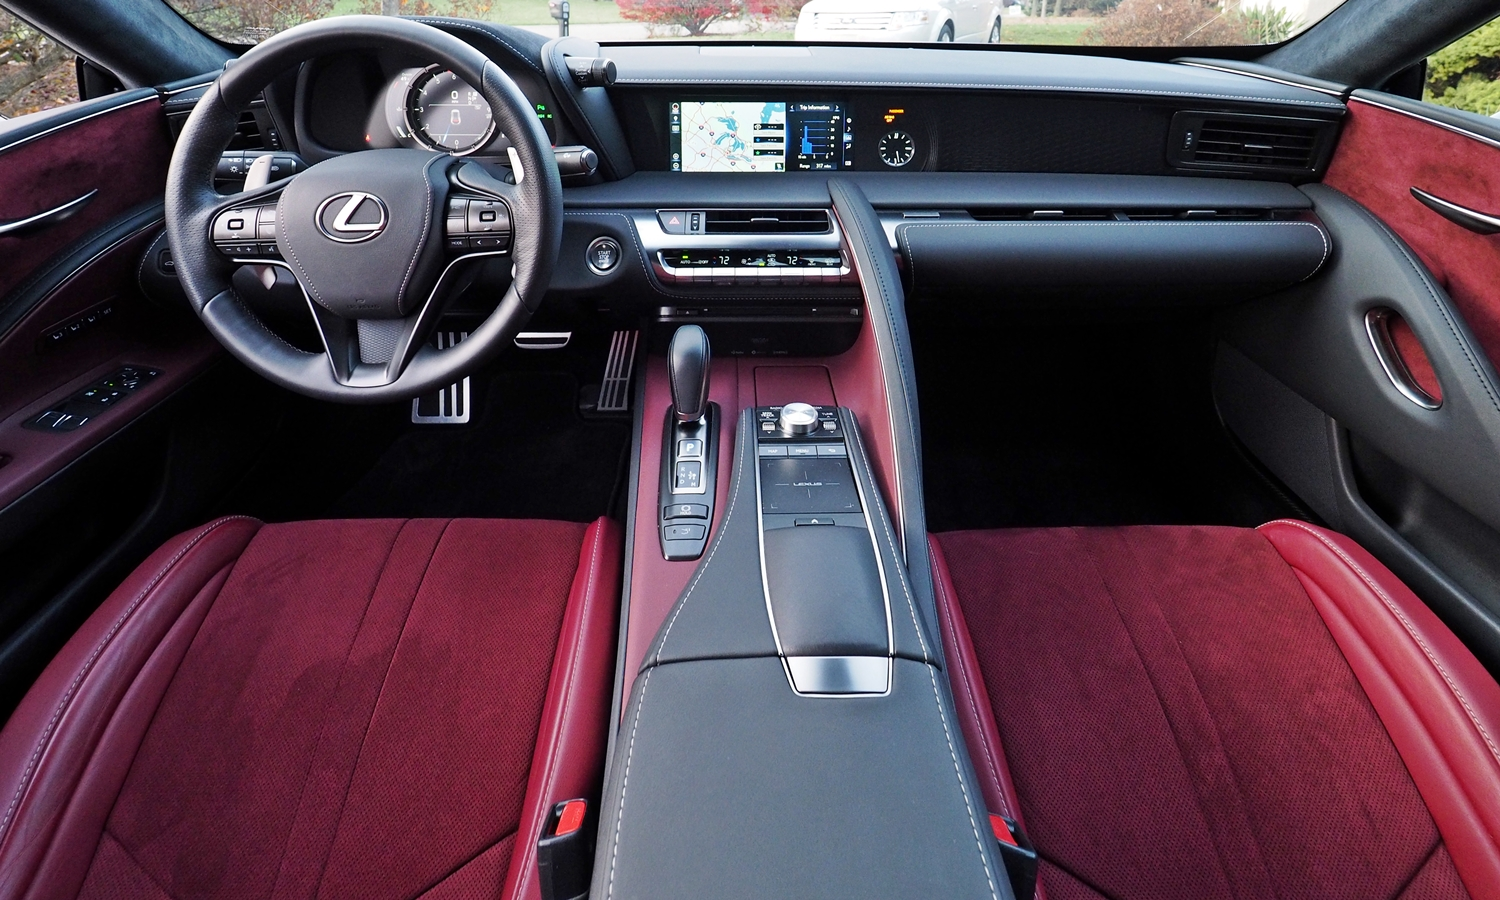 Lexus LC Photos: Lexus LC 500 instrument panel full width